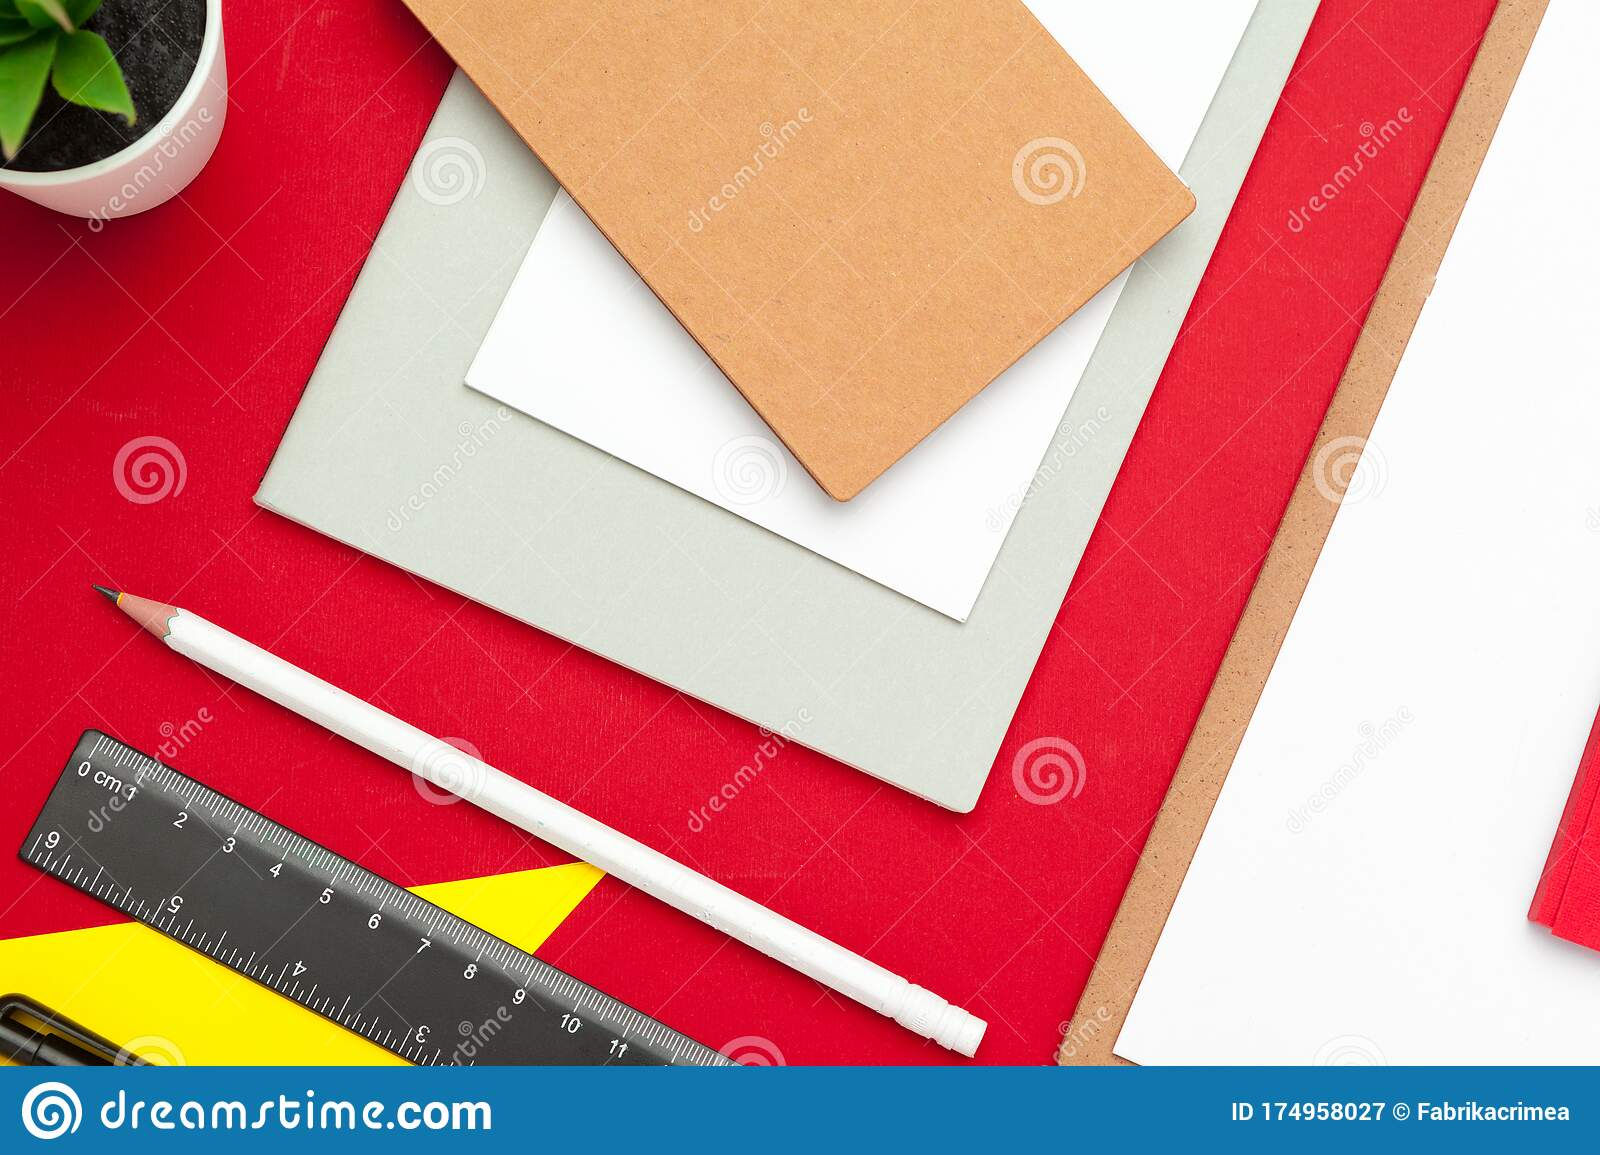 Assortment Of Office Supplies And Technology Accessories Modern Working Table Top View Stock Image Image Of Page Desktop 174958027